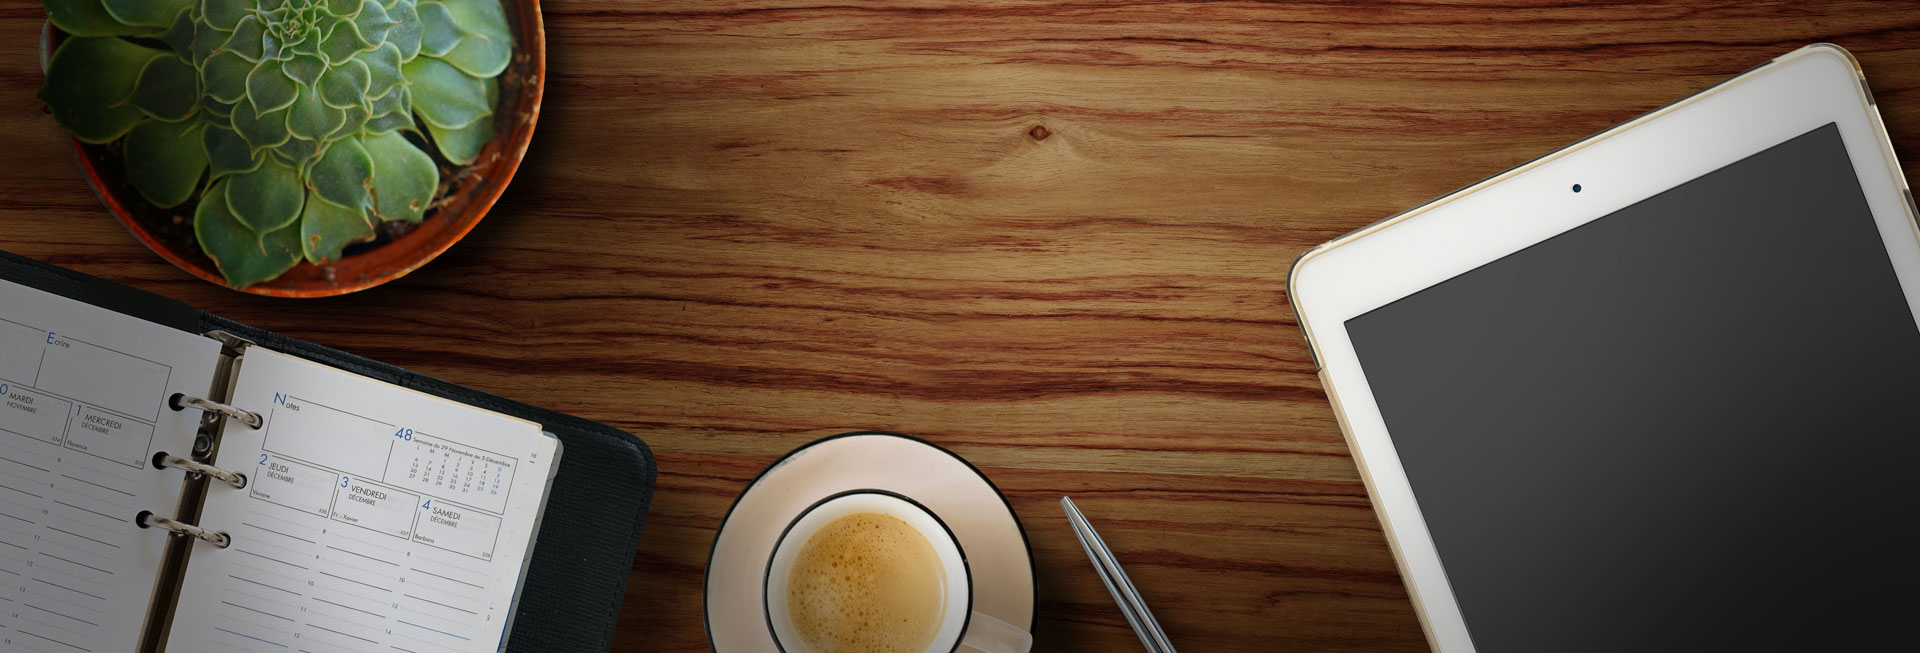 header image with wood background, notebook, coffee cup, plant, ipad